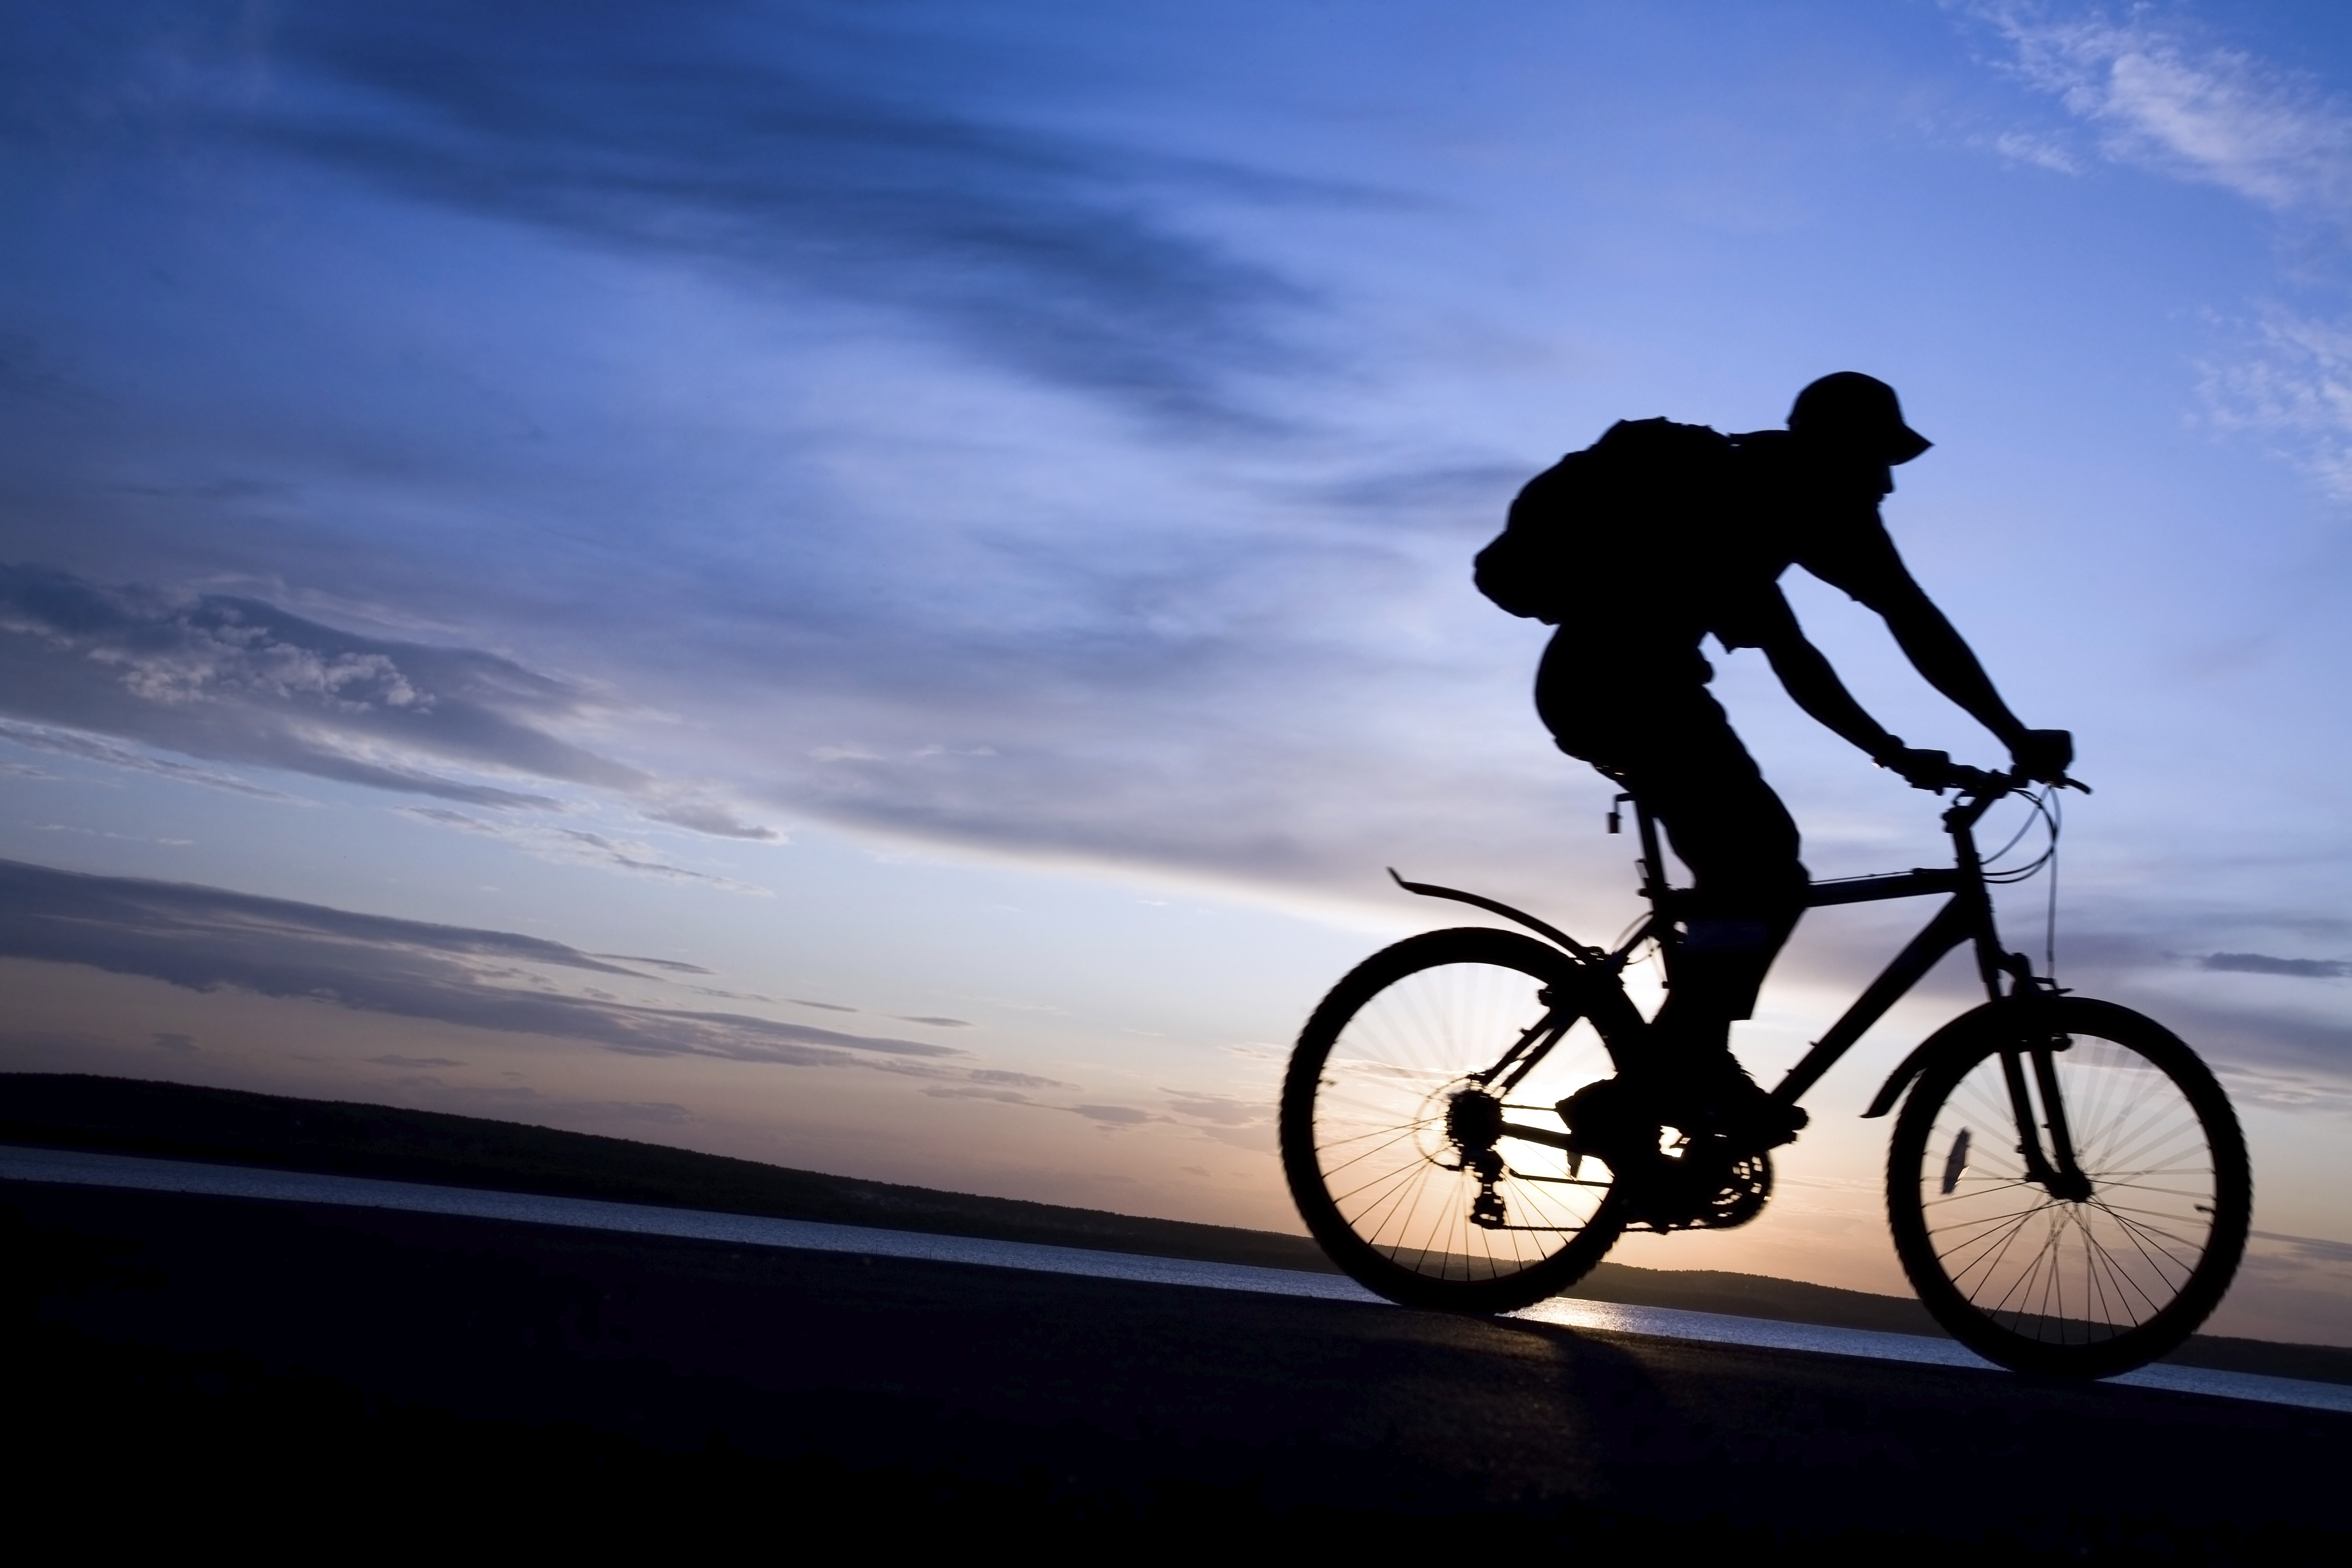 Going Riding in the Dark? Here's What You Should Know - The Hybrid Bike